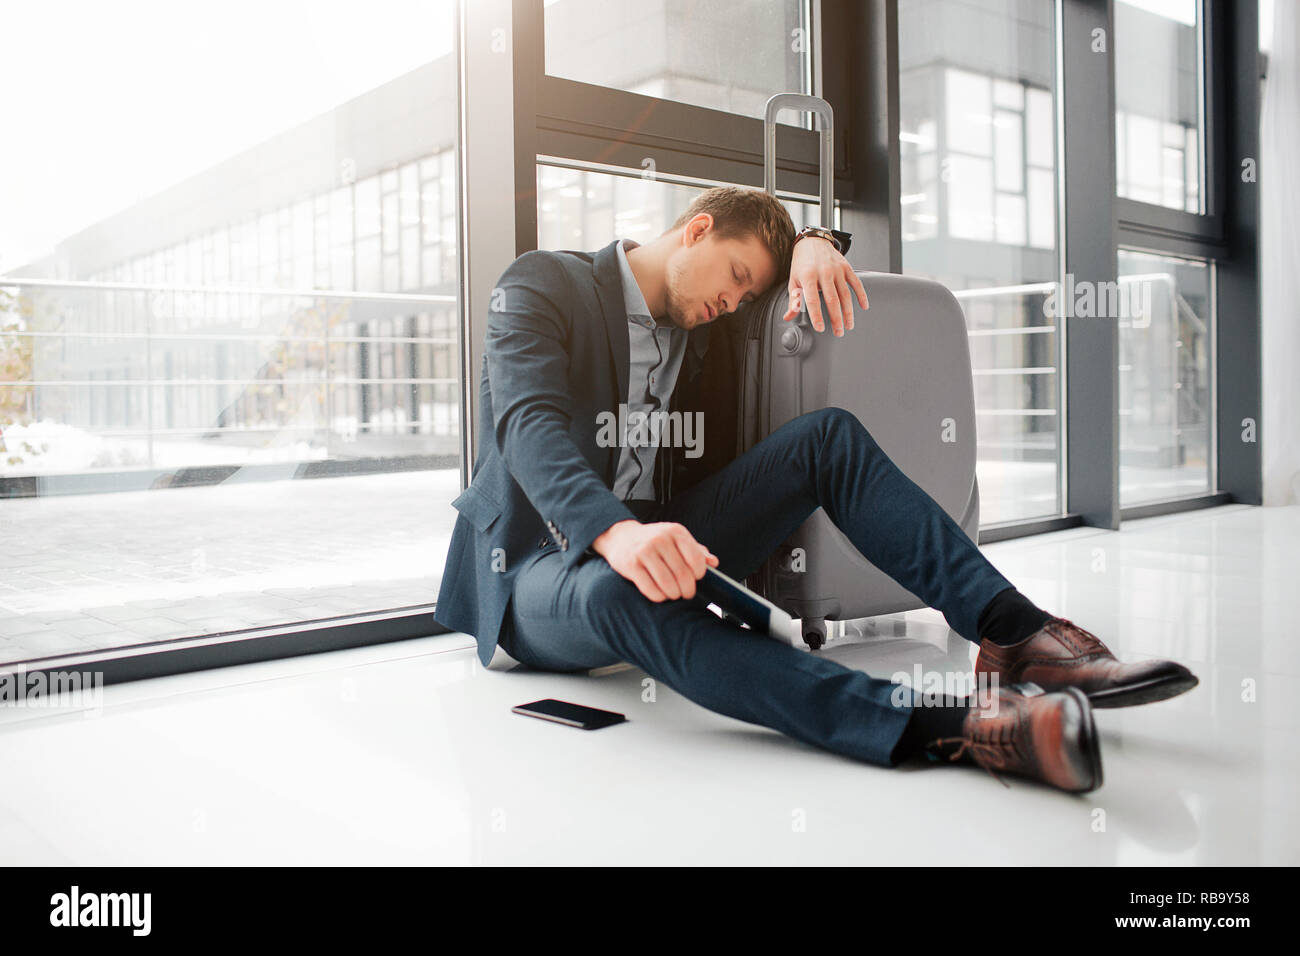 Tired young man lit on floor in airport hall. Guy sleeps. He lean on suitcase. He left phone on floor Stock Photo